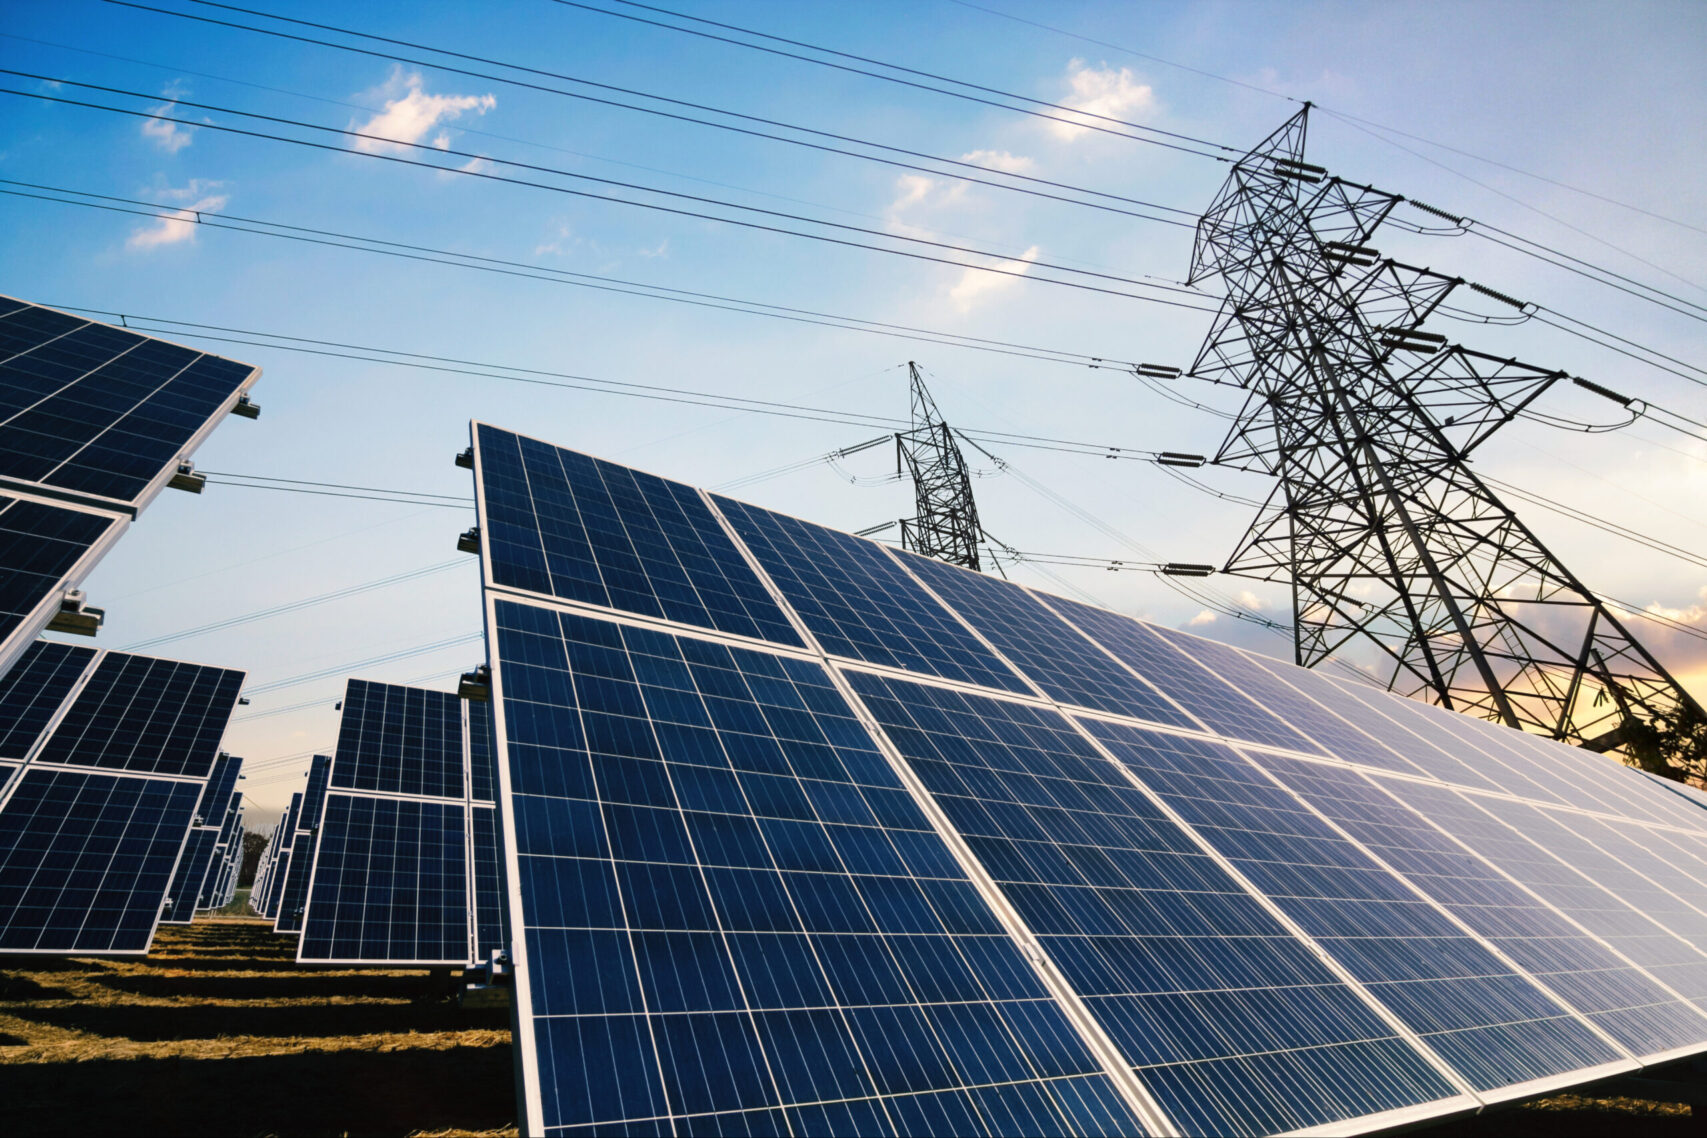 Local Solar And Battery Storage Can Save Illinois Billons, New Grid-Planning Analysis Shows